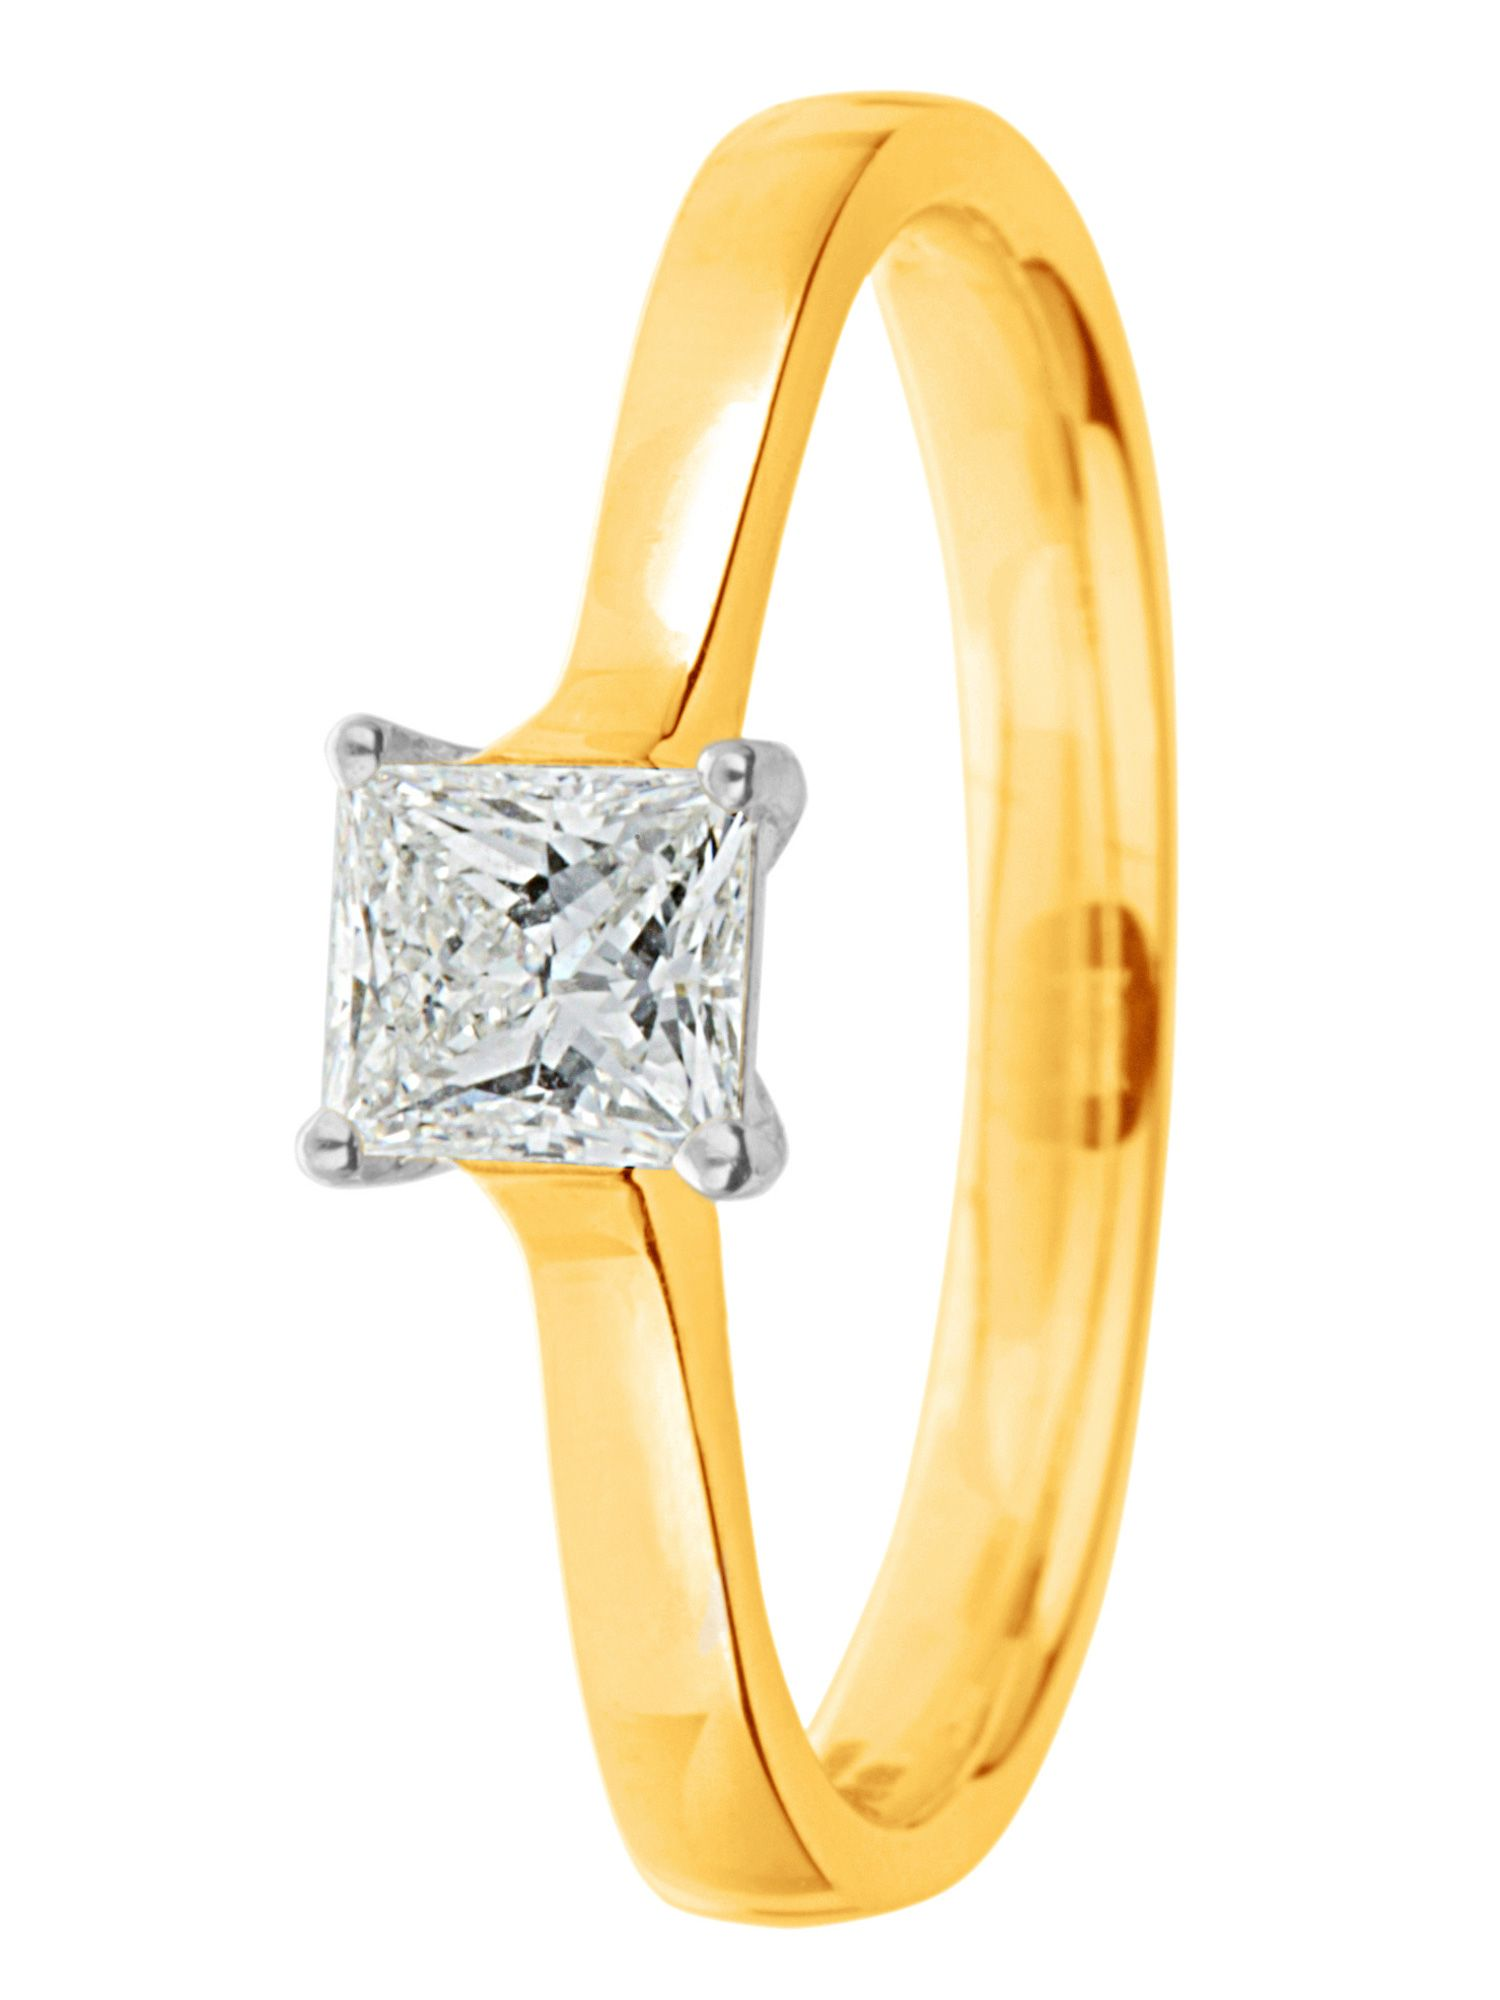 Goldsmiths Ardesco 18ct gold diamond solitaire Gold